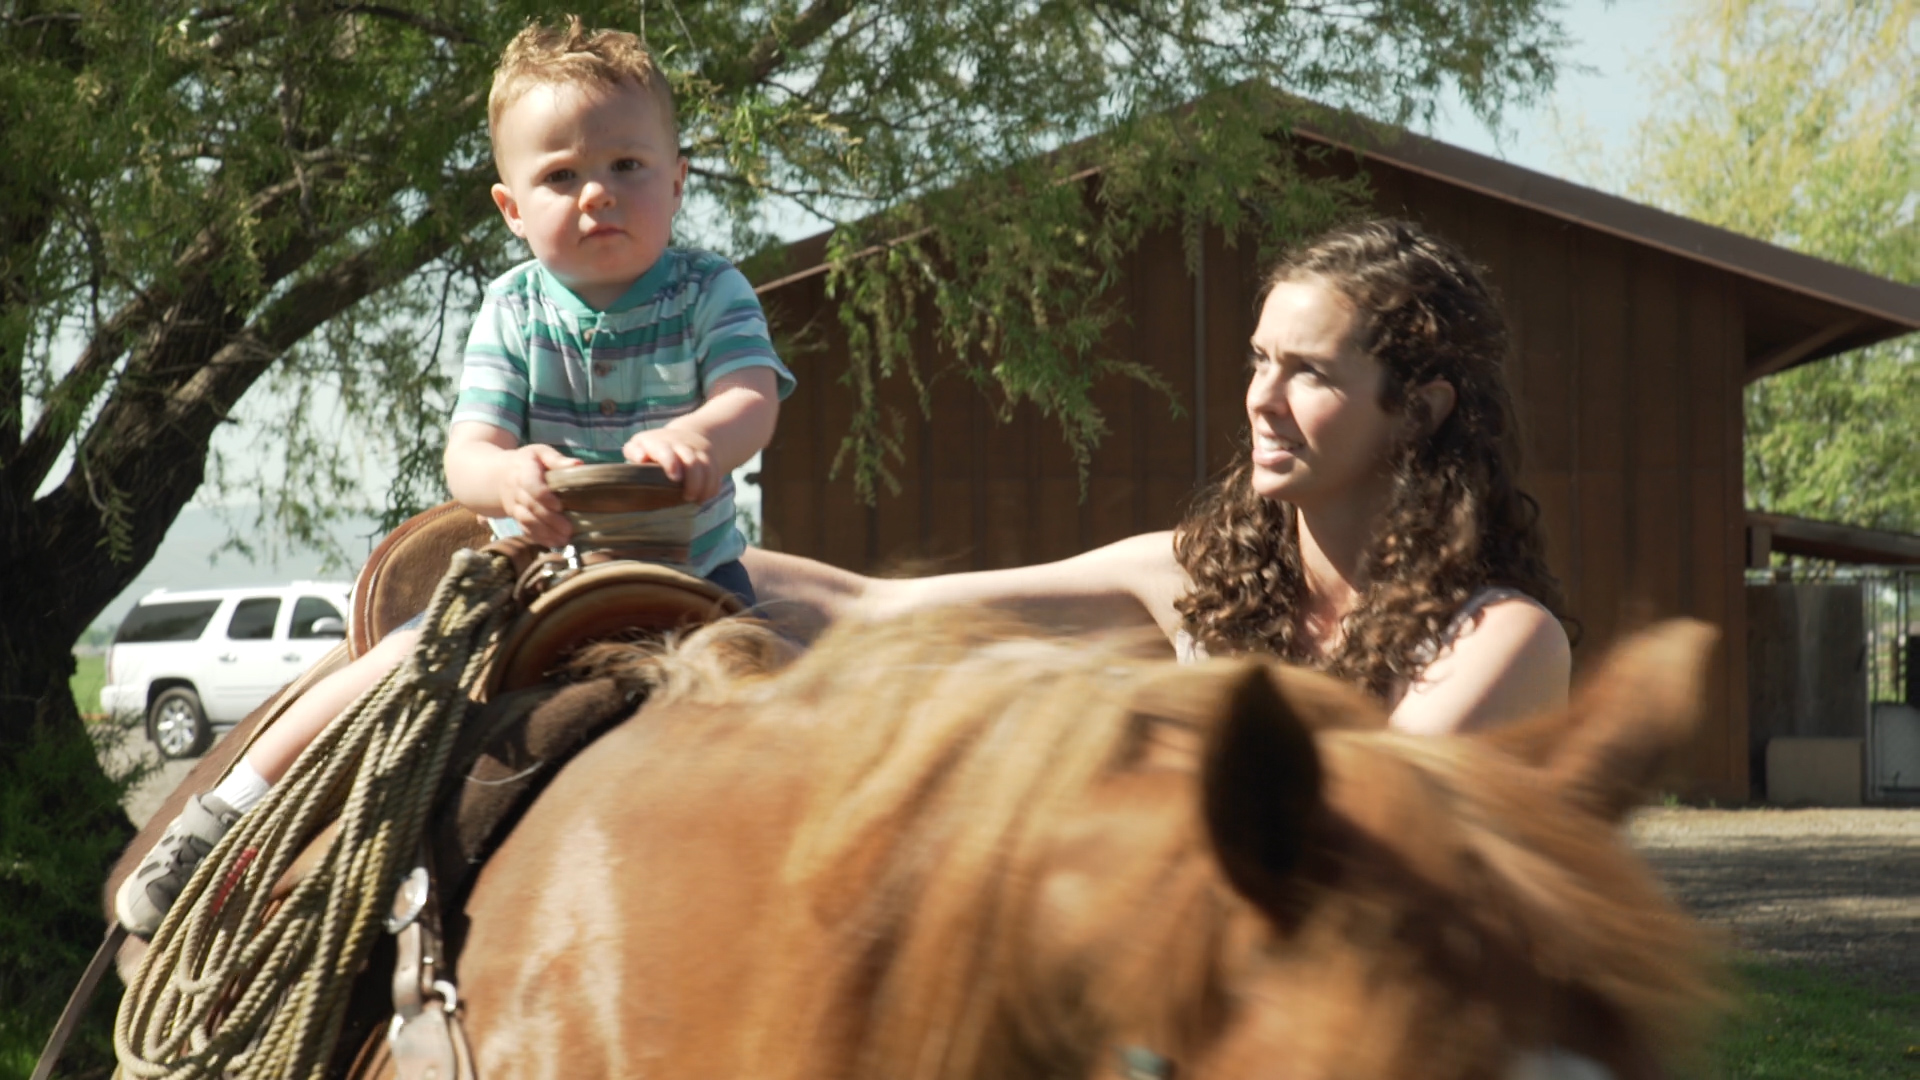 Mays grandson on horse